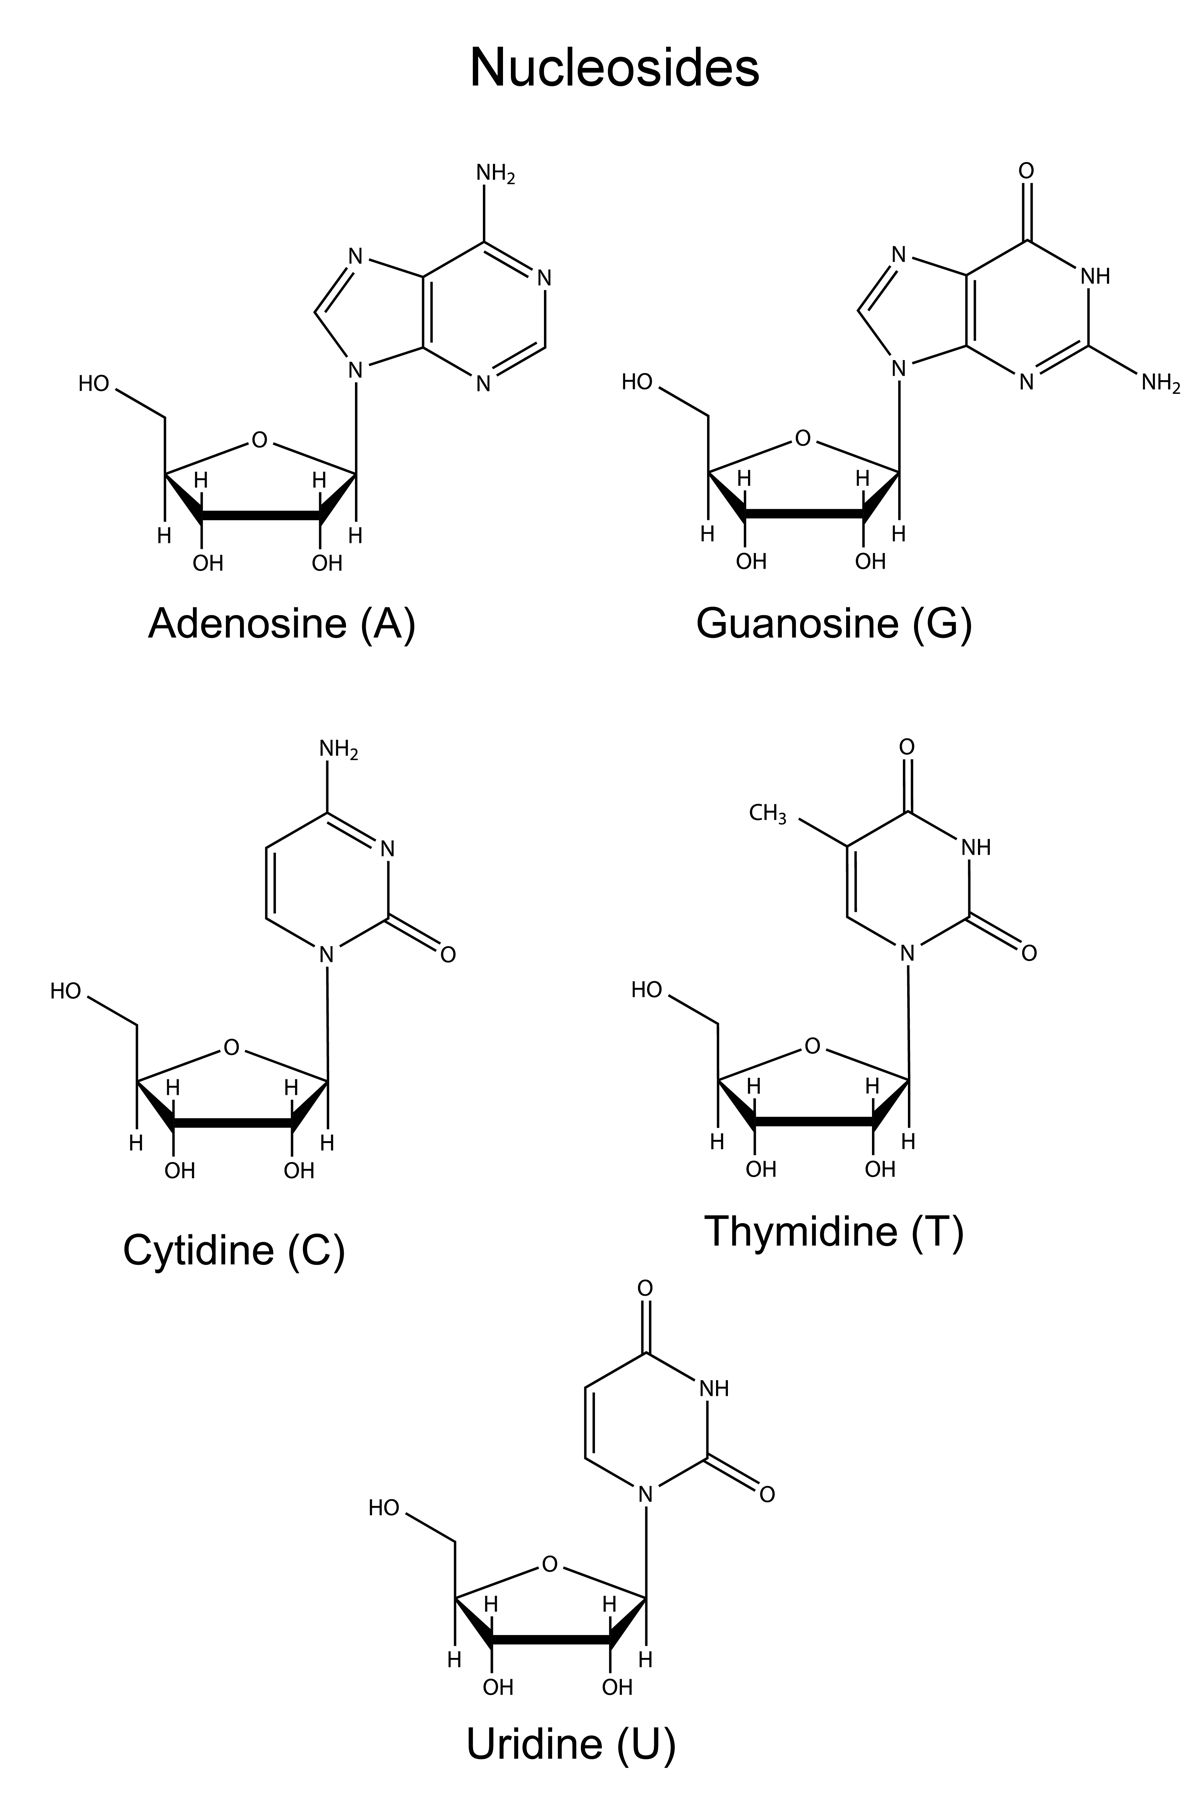 Nucleoside Vs Nucleotide The Small Yet Significant Difference Biology Notes Student Motivation Biology